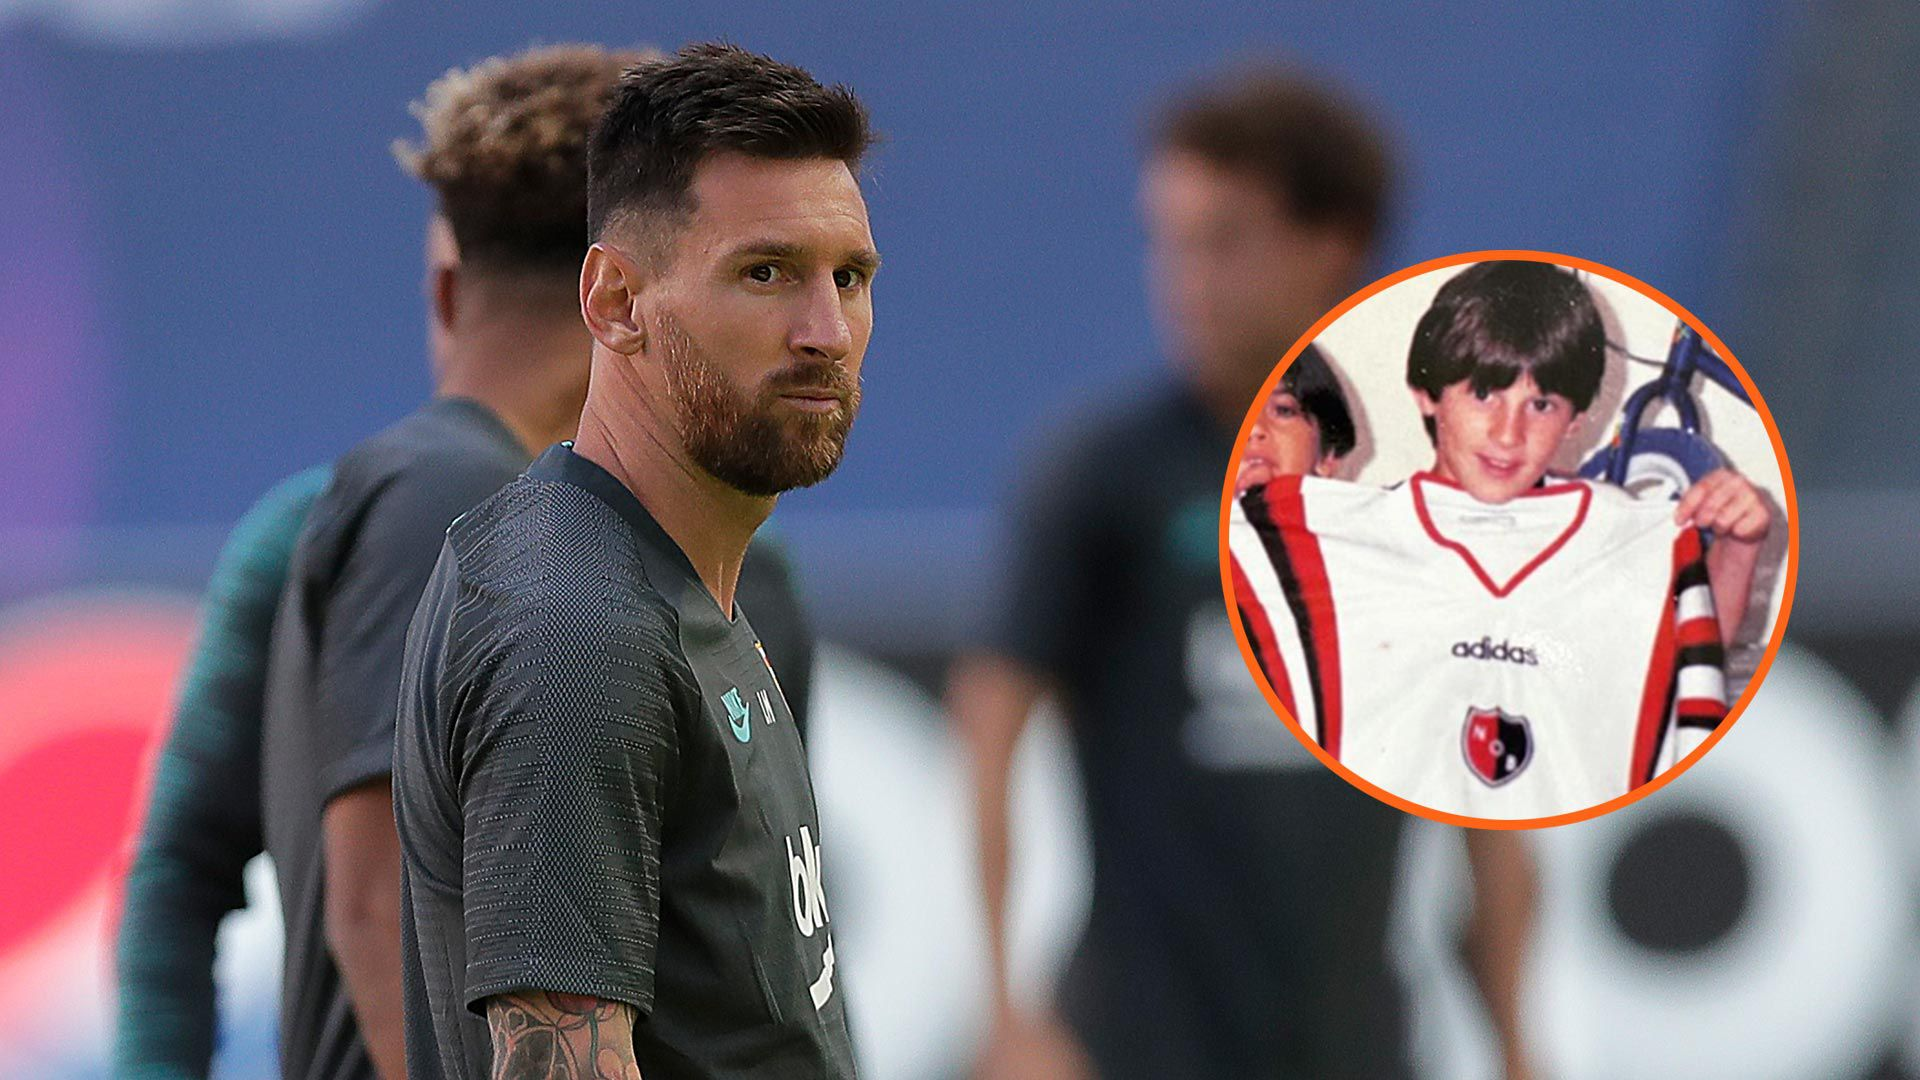 inédita Messi con camiseta de Newells 1920 collage